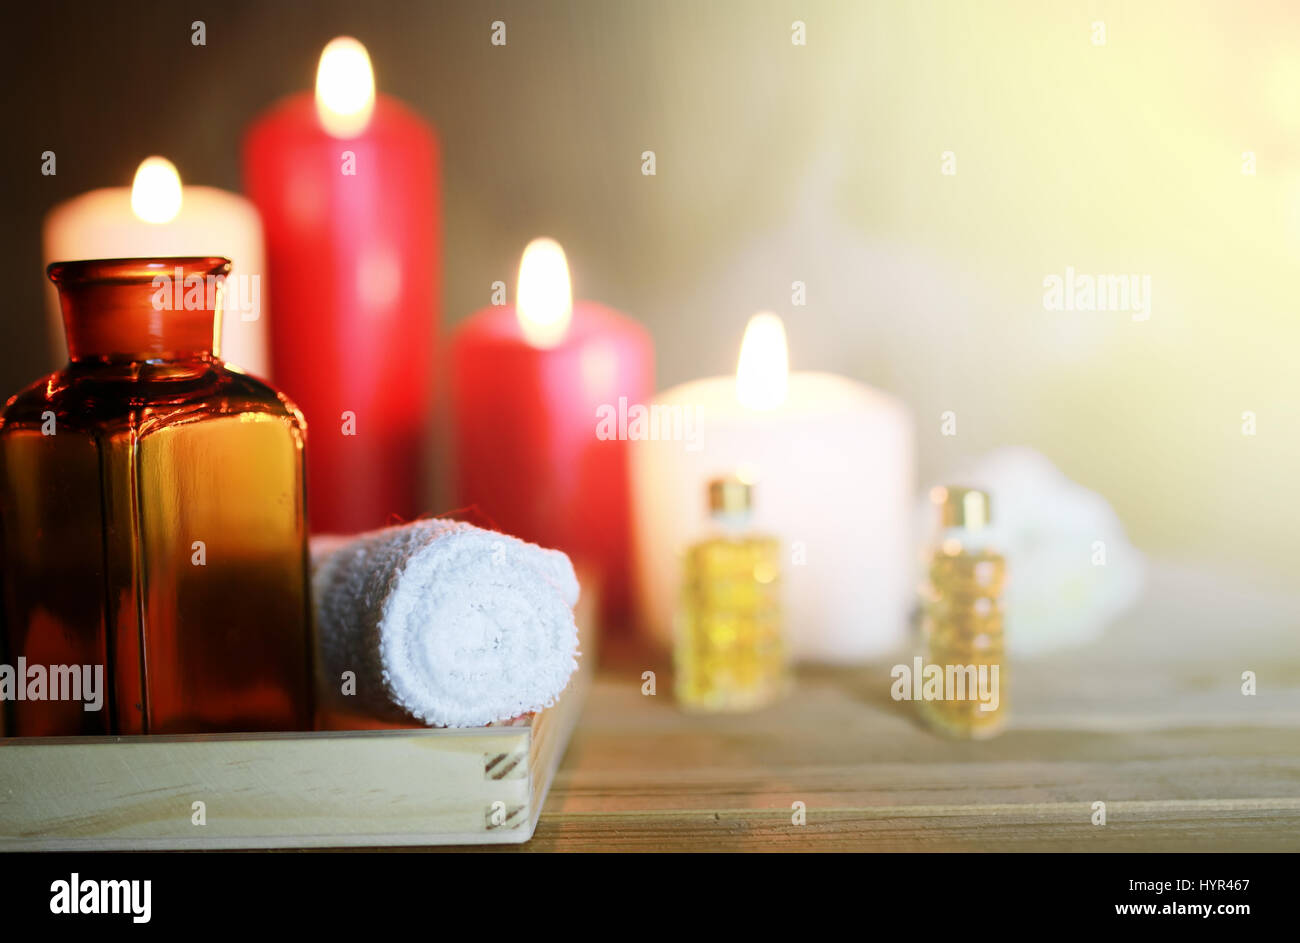 Spa accessories candle and bottle - Stock Image